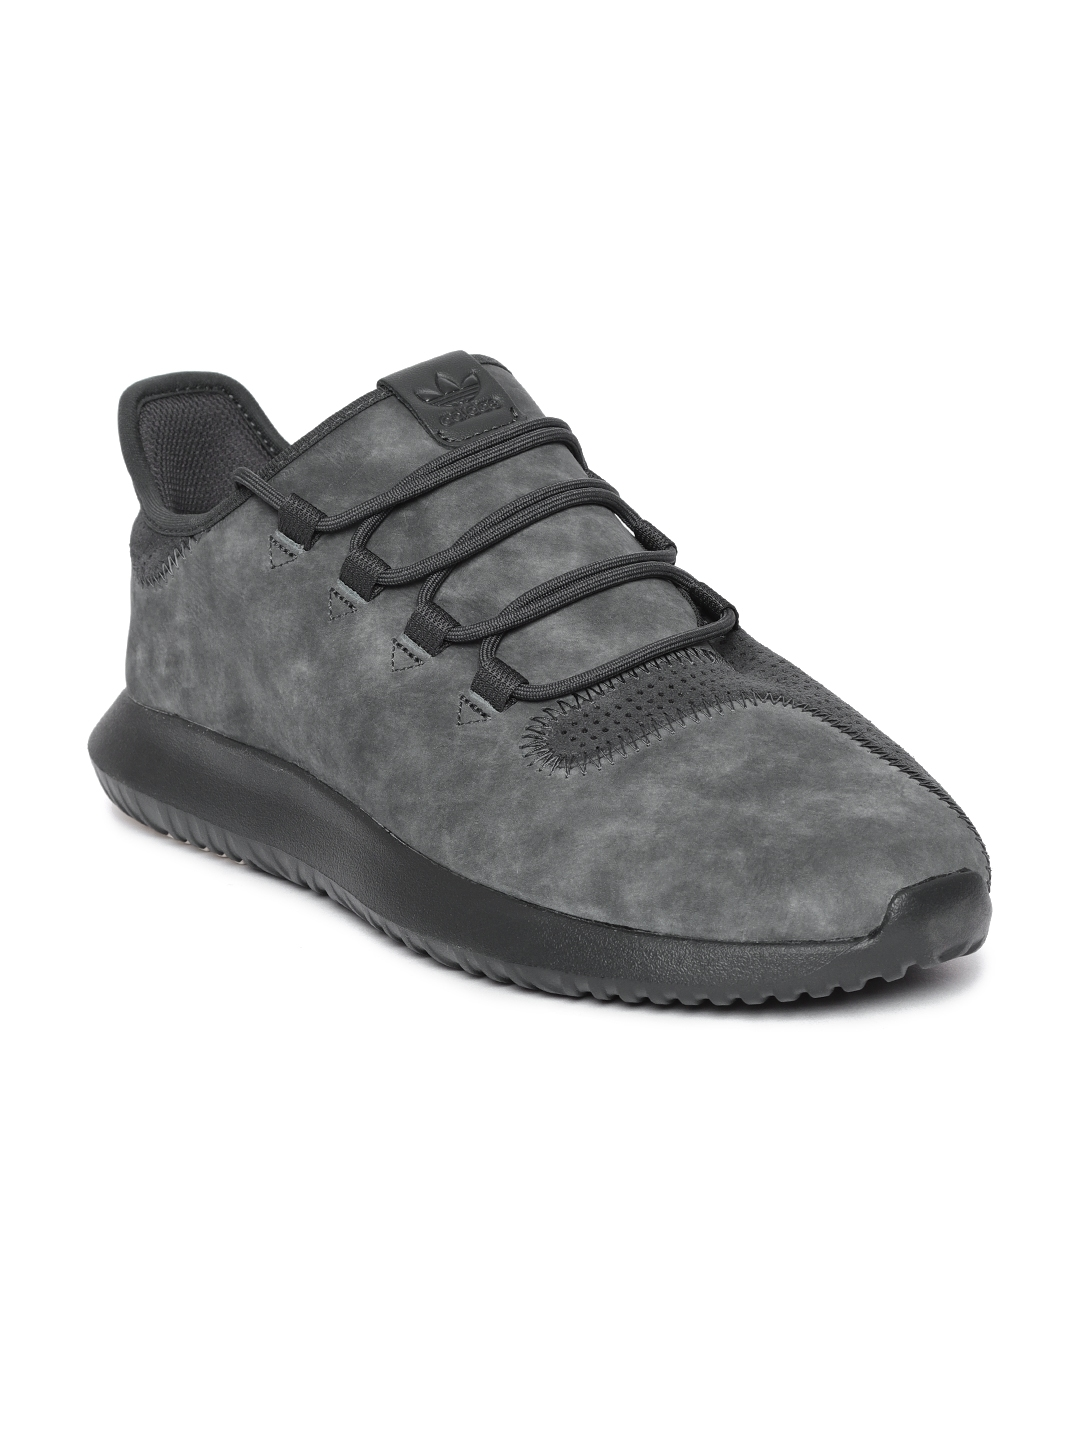 Adidas Originals Men Charcoal Grey Suede